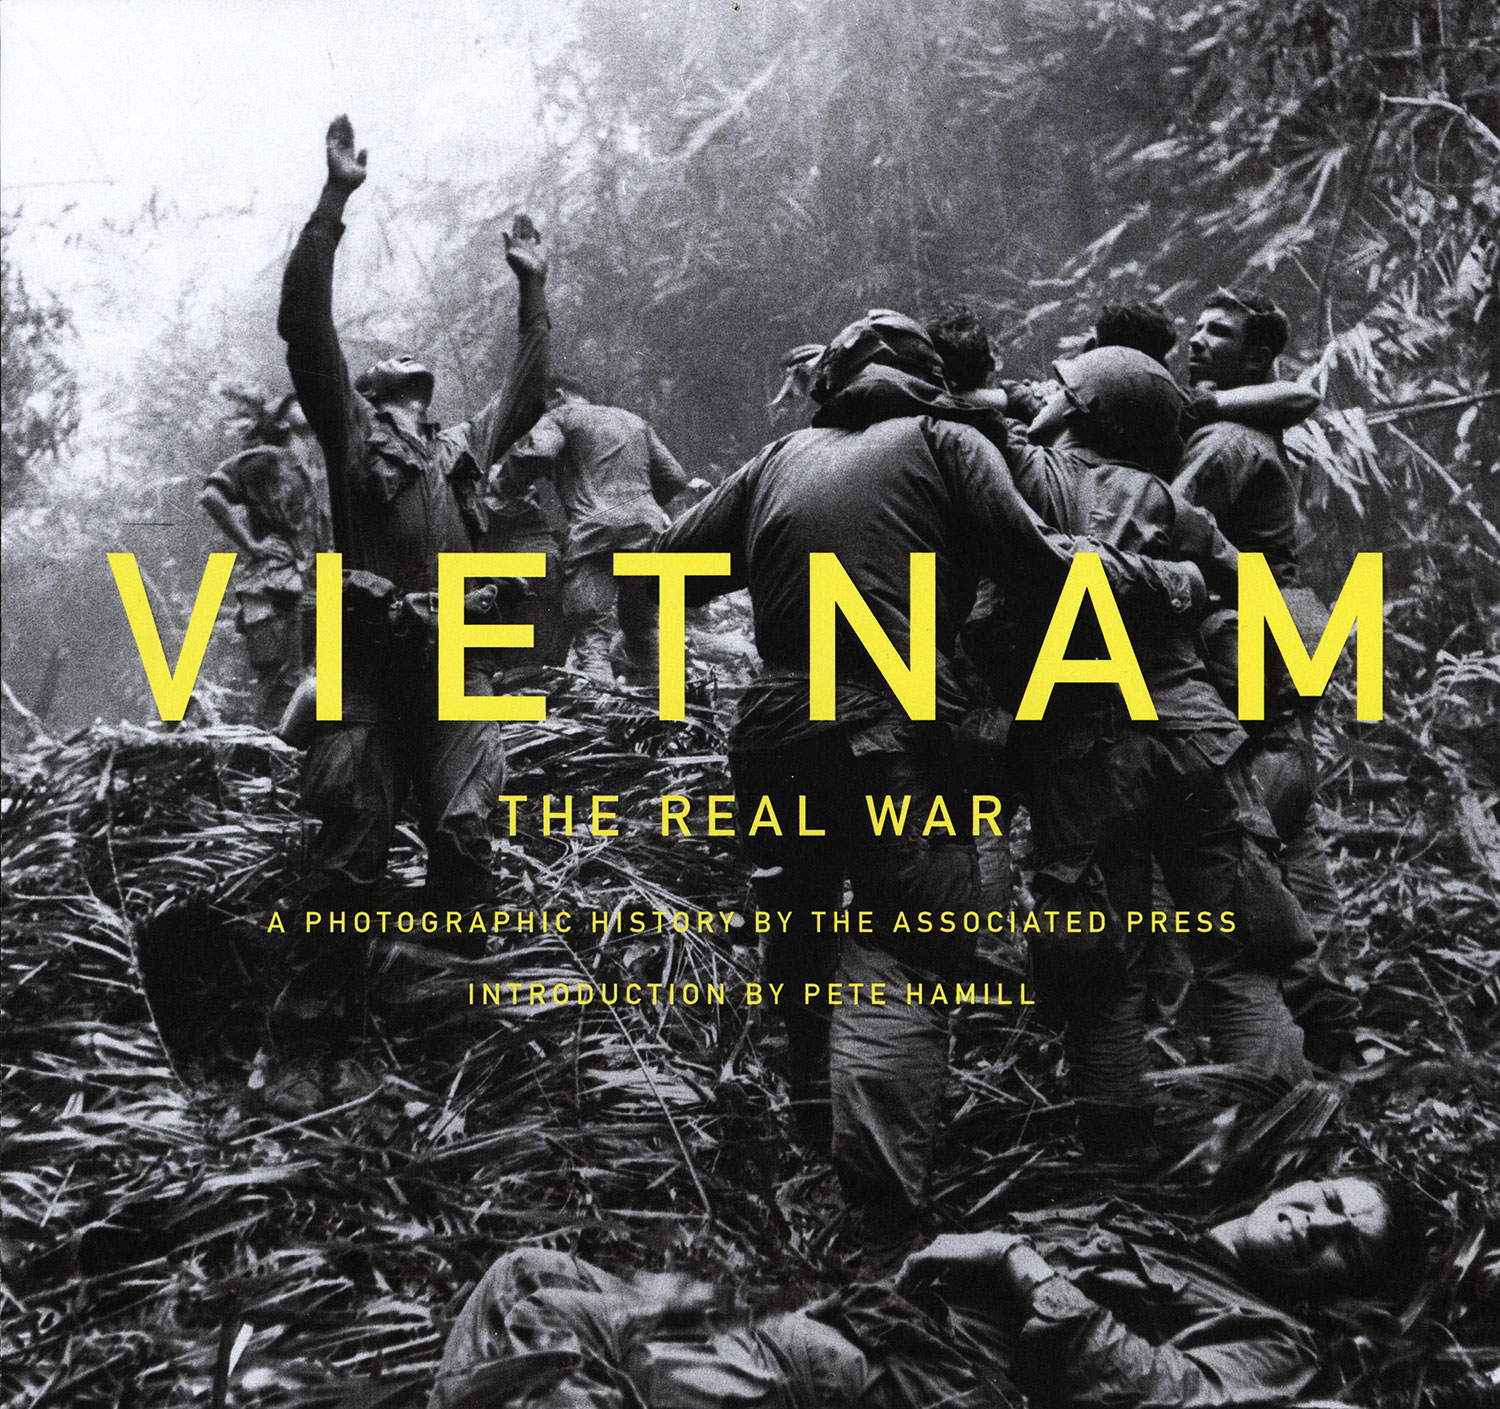 veitnam essay This free history essay on essay: the war in vietnam is perfect for history students to use as an example.